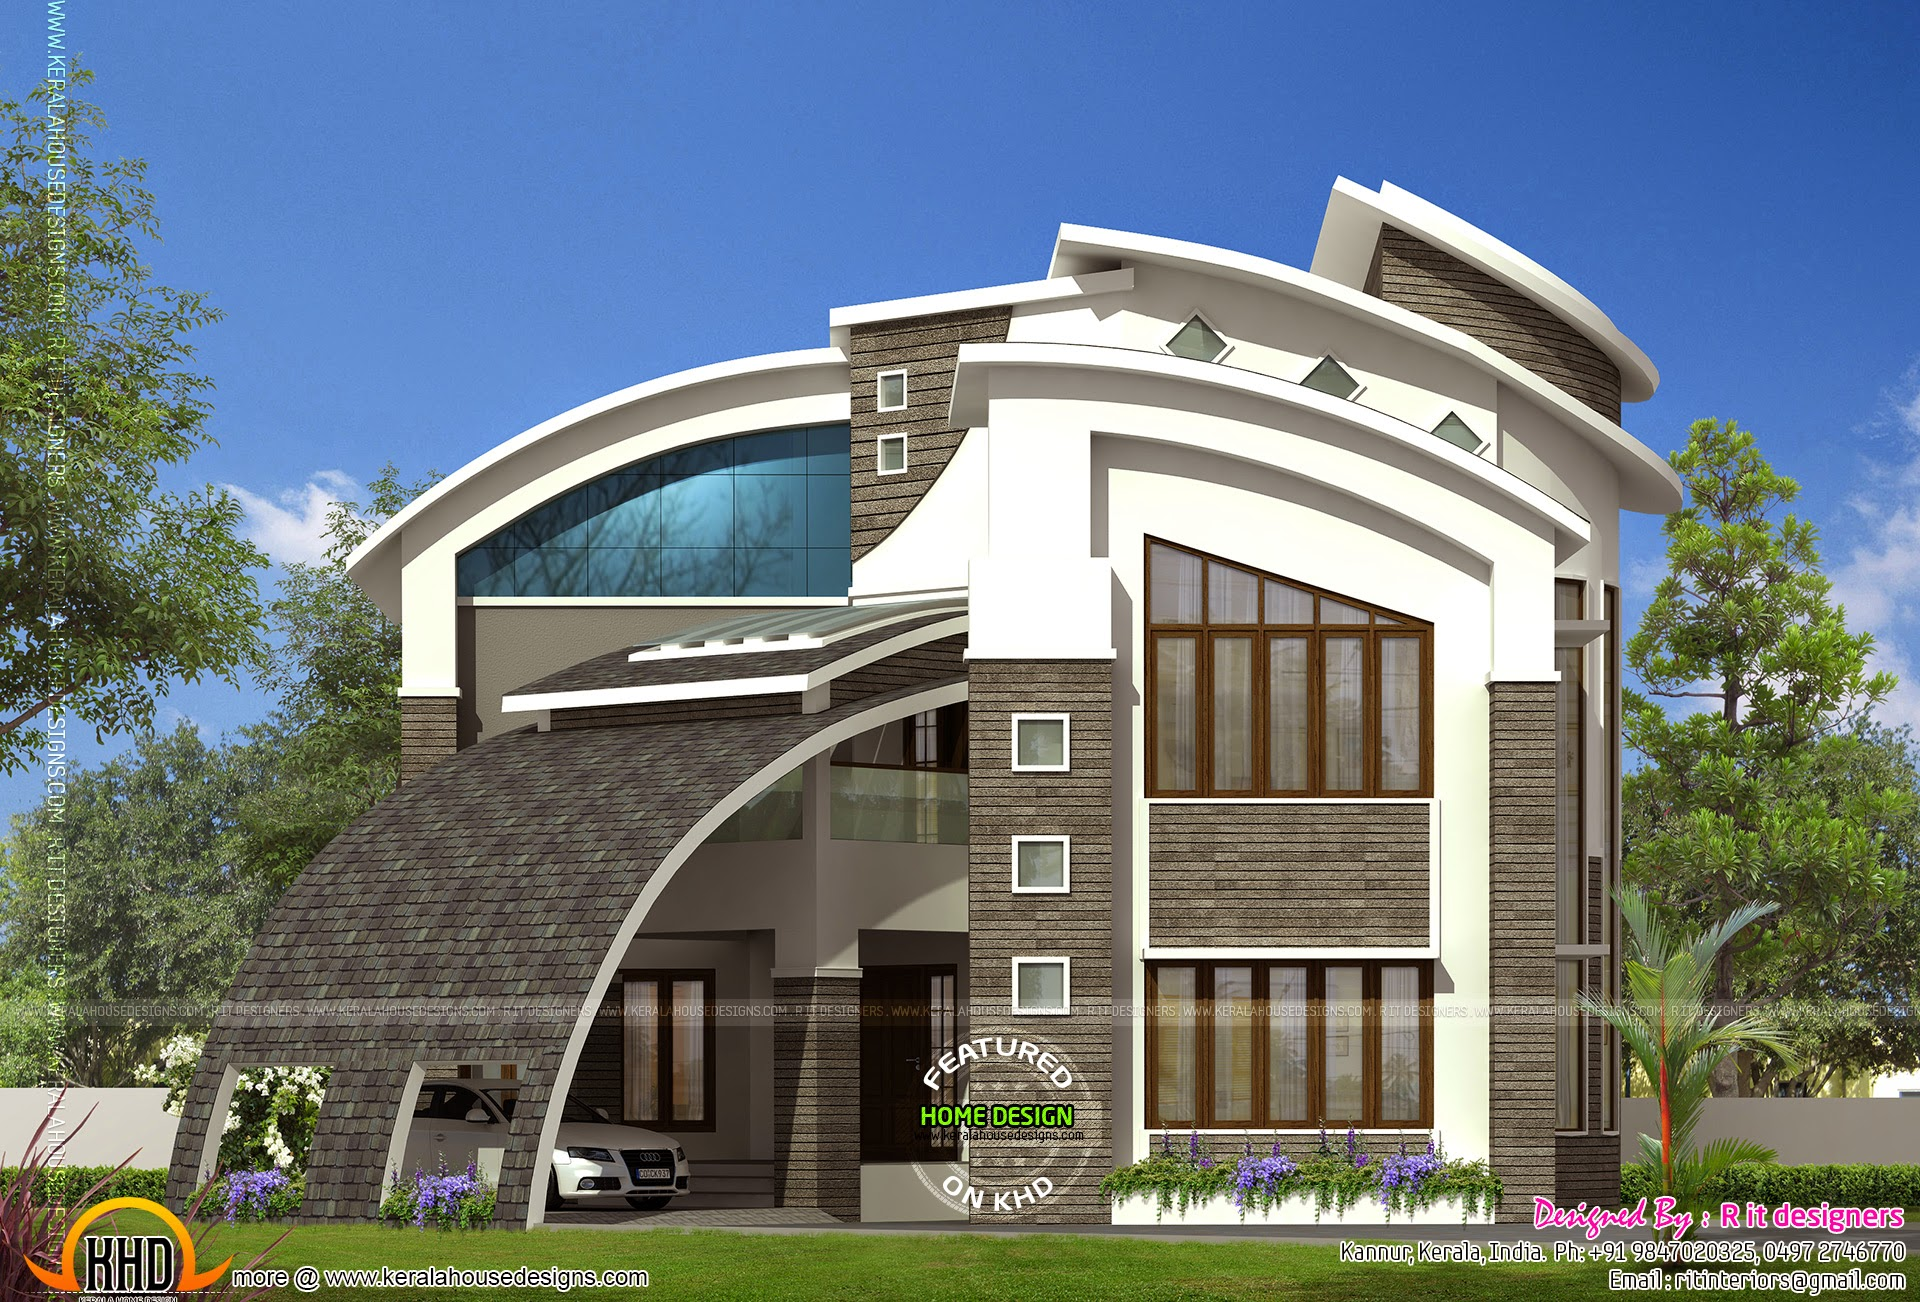 Most modern contemporary house design kerala home design for Modern contemporary house plans for sale